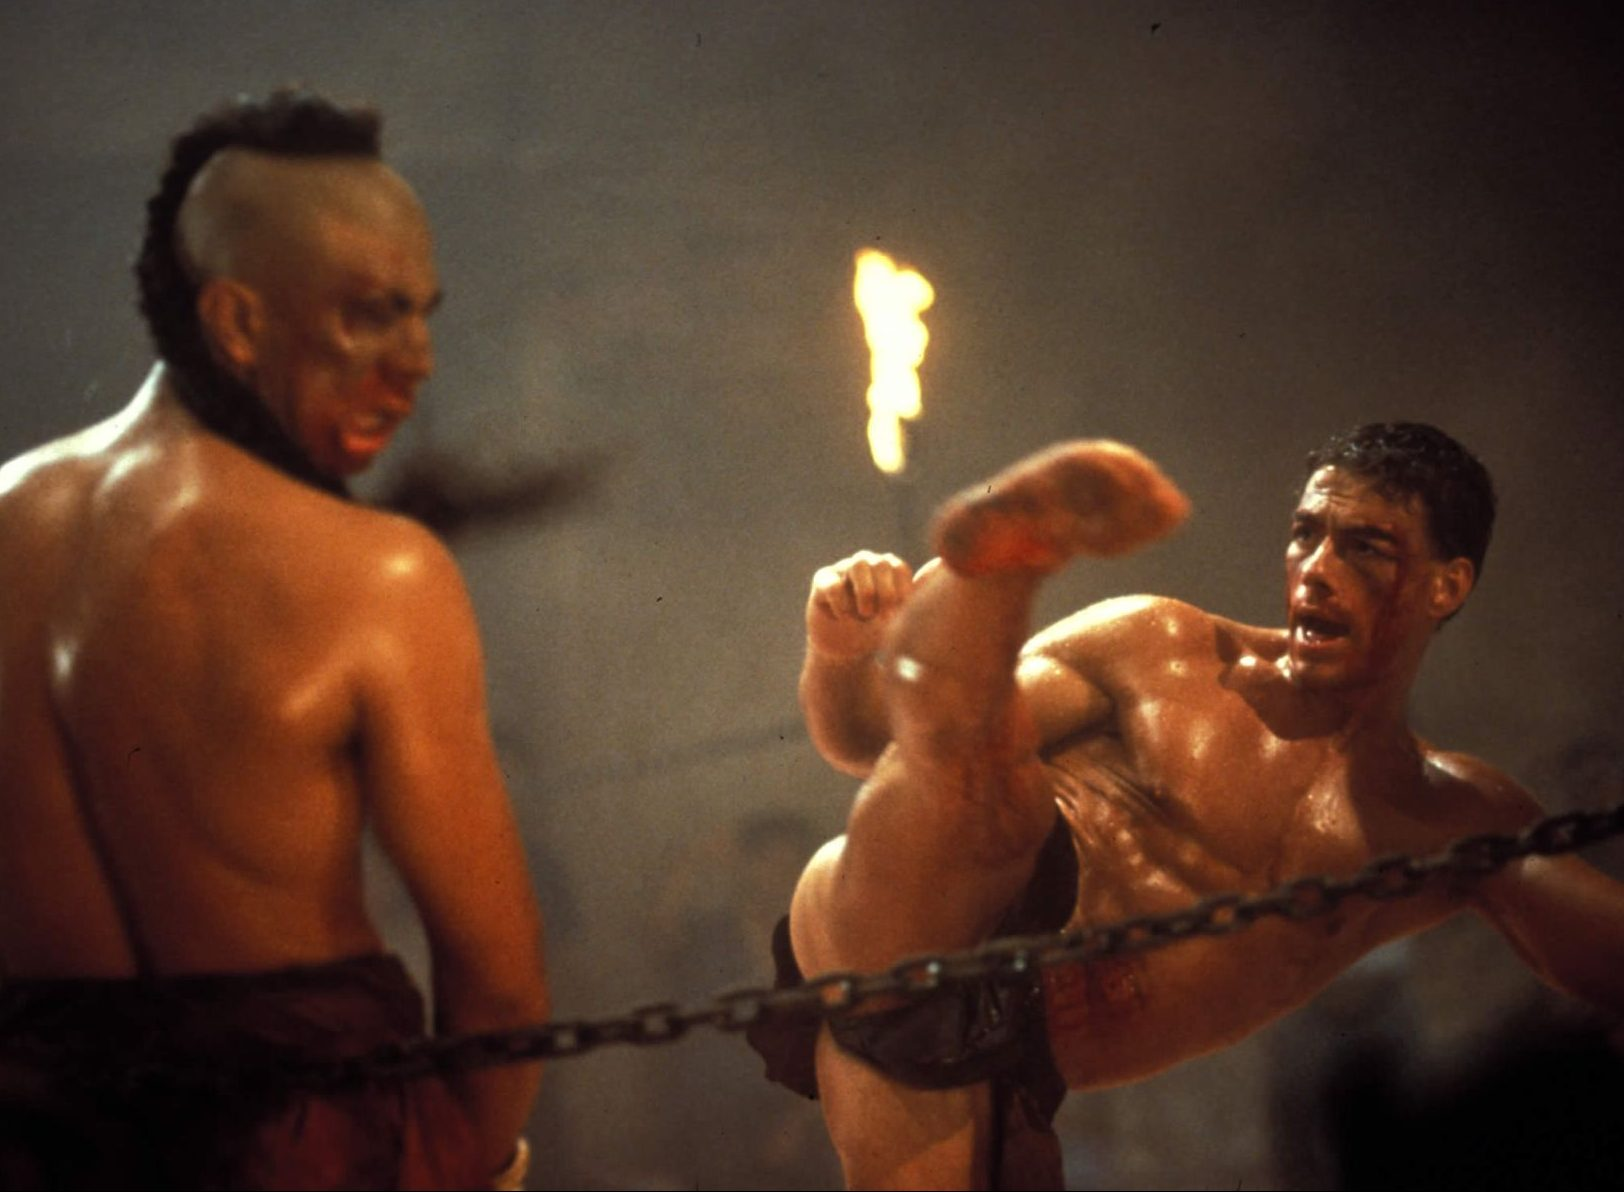 rs 176171 Kickboxer 15 e1621852532689 25 Things You Probably Didn't Know About Jean-Claude Van Damme